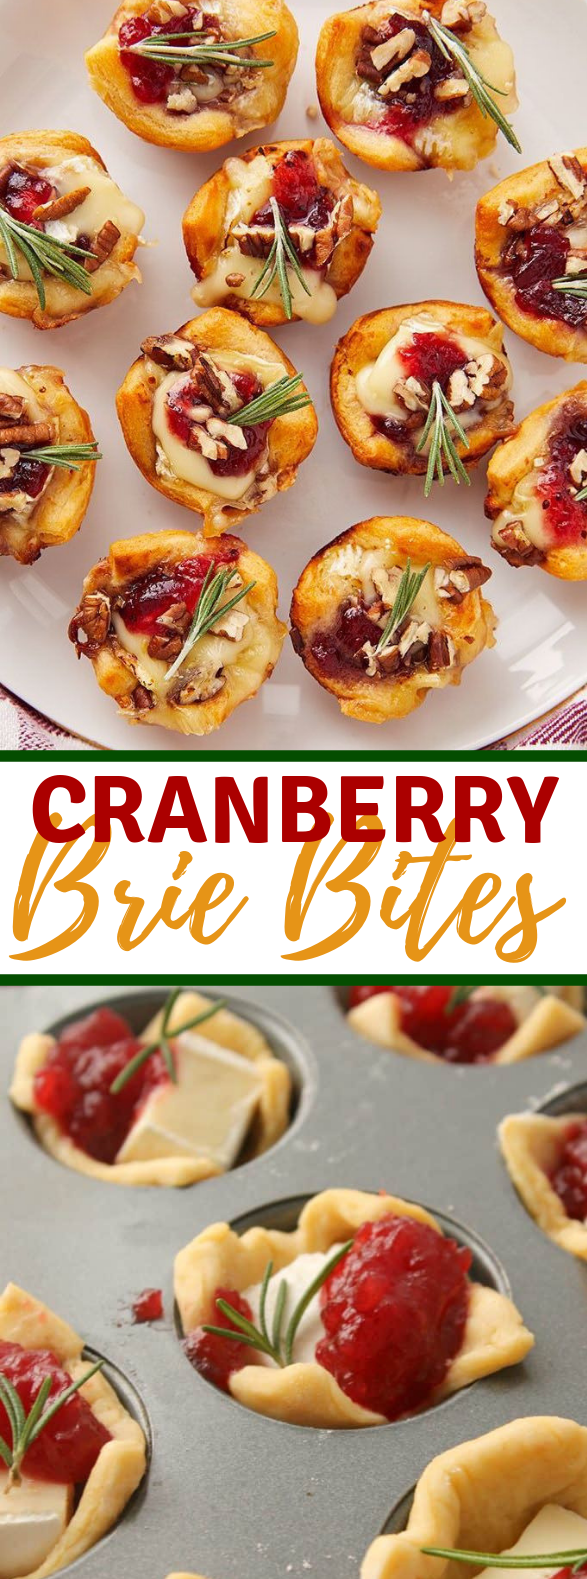 Cranberry Brie Bites #appetizers #party #pastry #meals #cranberry #cranberrybriebites Cranberry Brie Bites #appetizers #party #pastry #meals #cranberry #cranberrybriebites